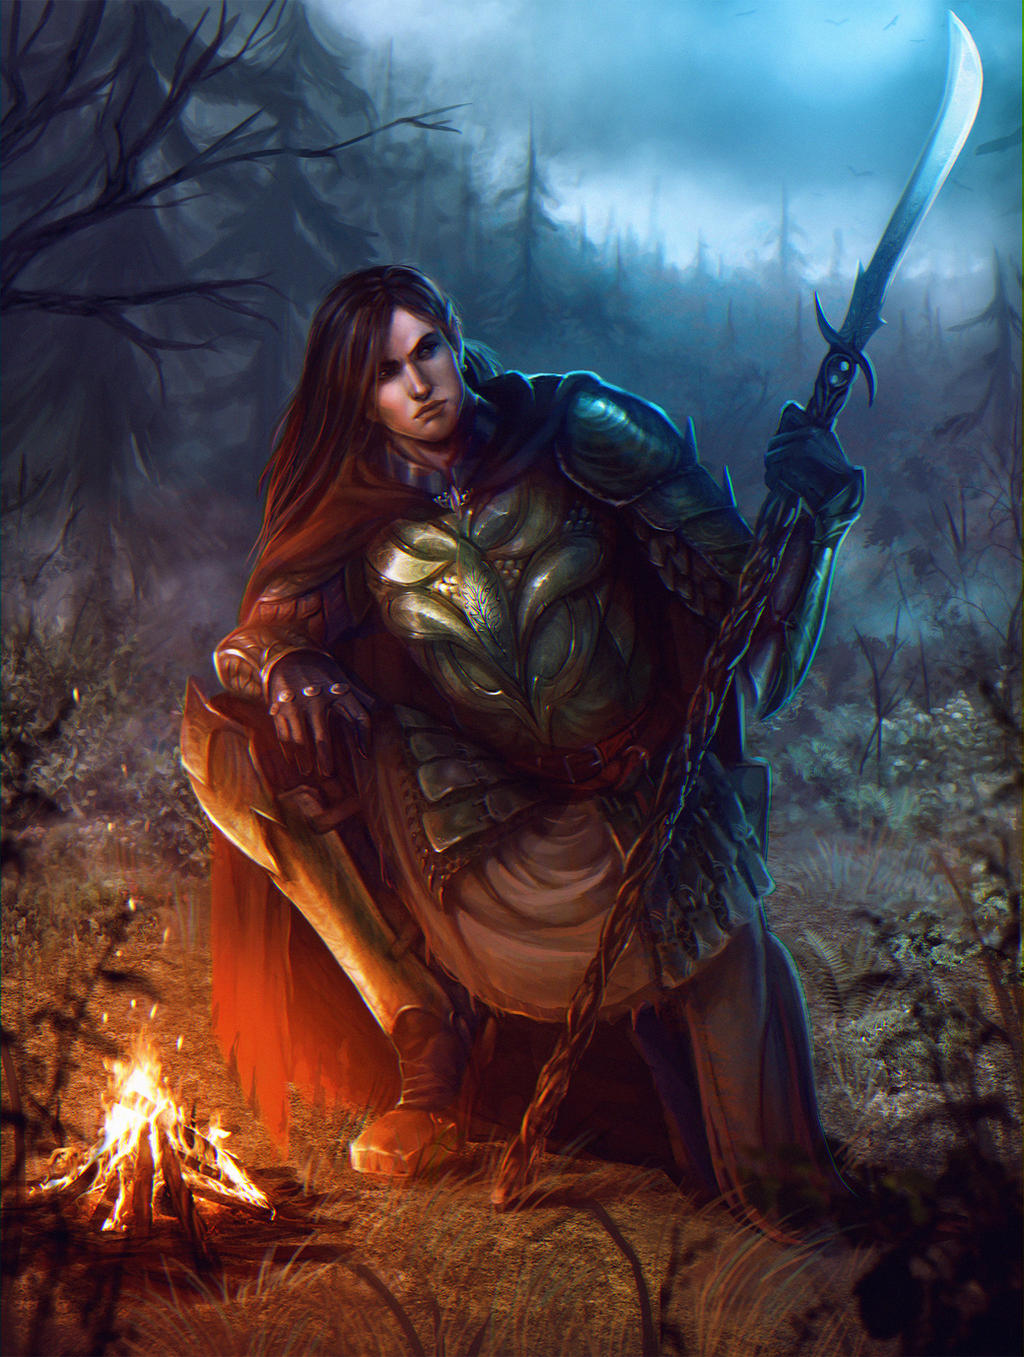 forest_warrior_by_elistraie-d9vbnkt.jpg